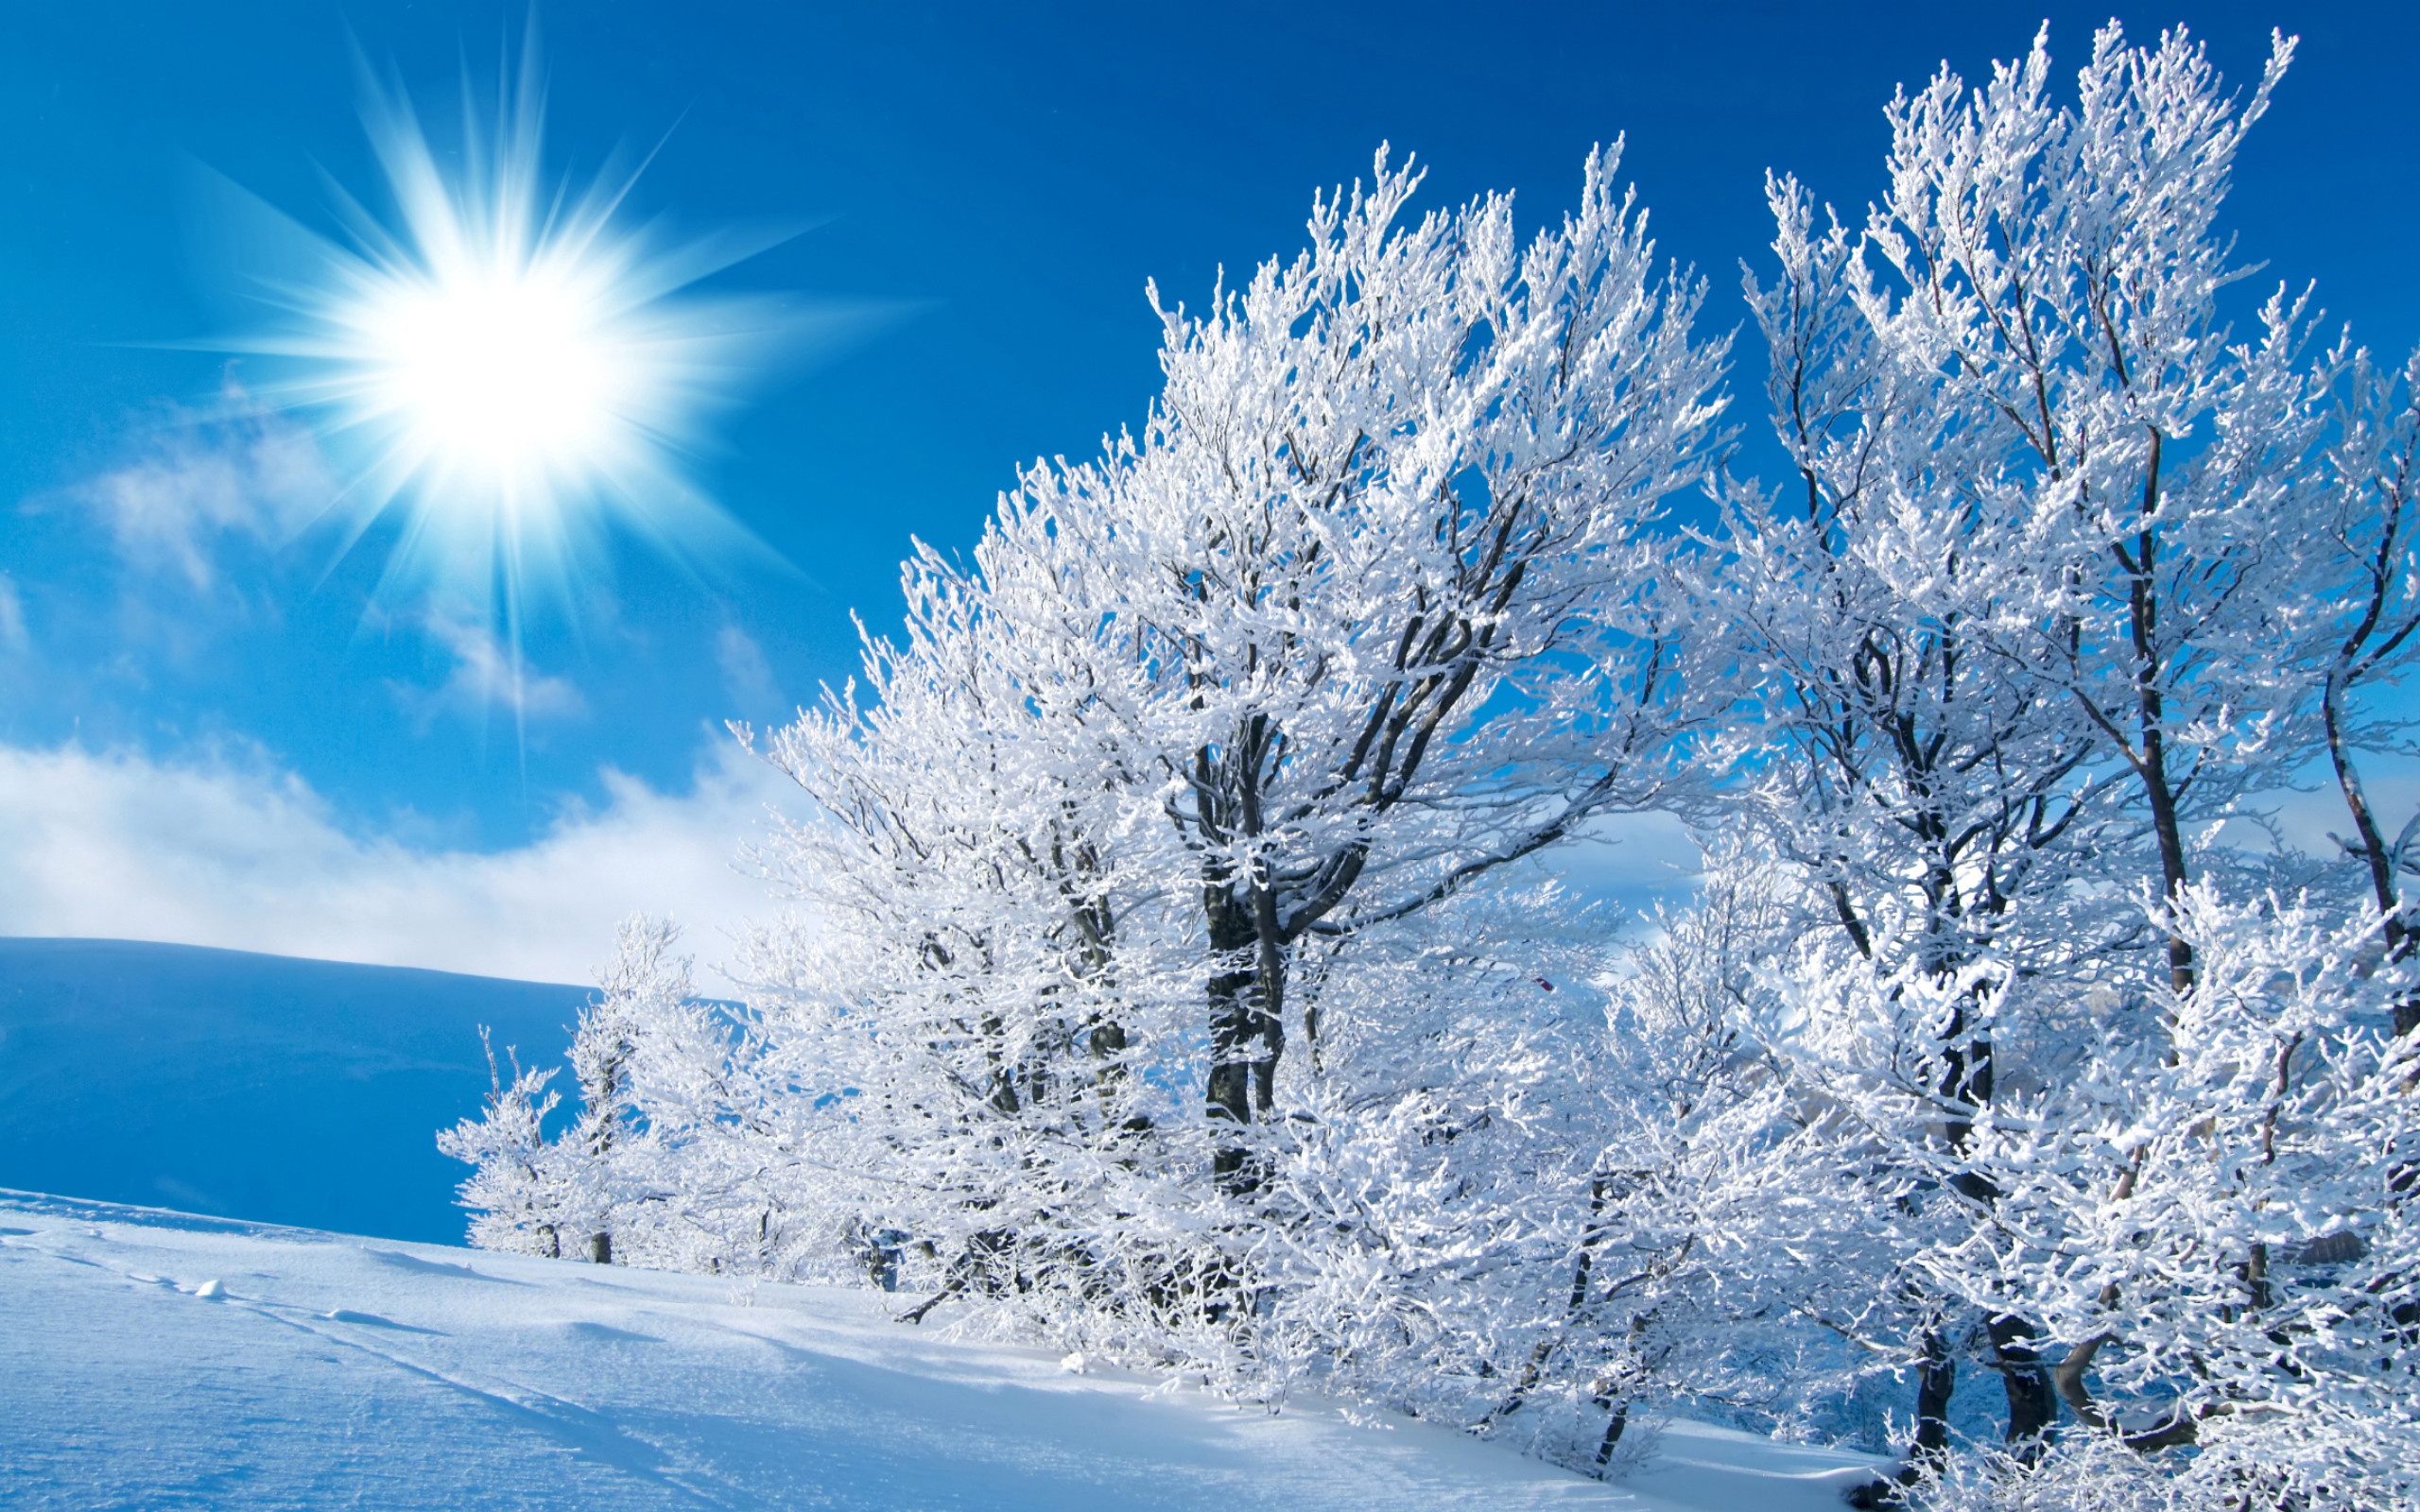 0 Winter Backgrounds HD Group Winter Backgrounds Scenes Group